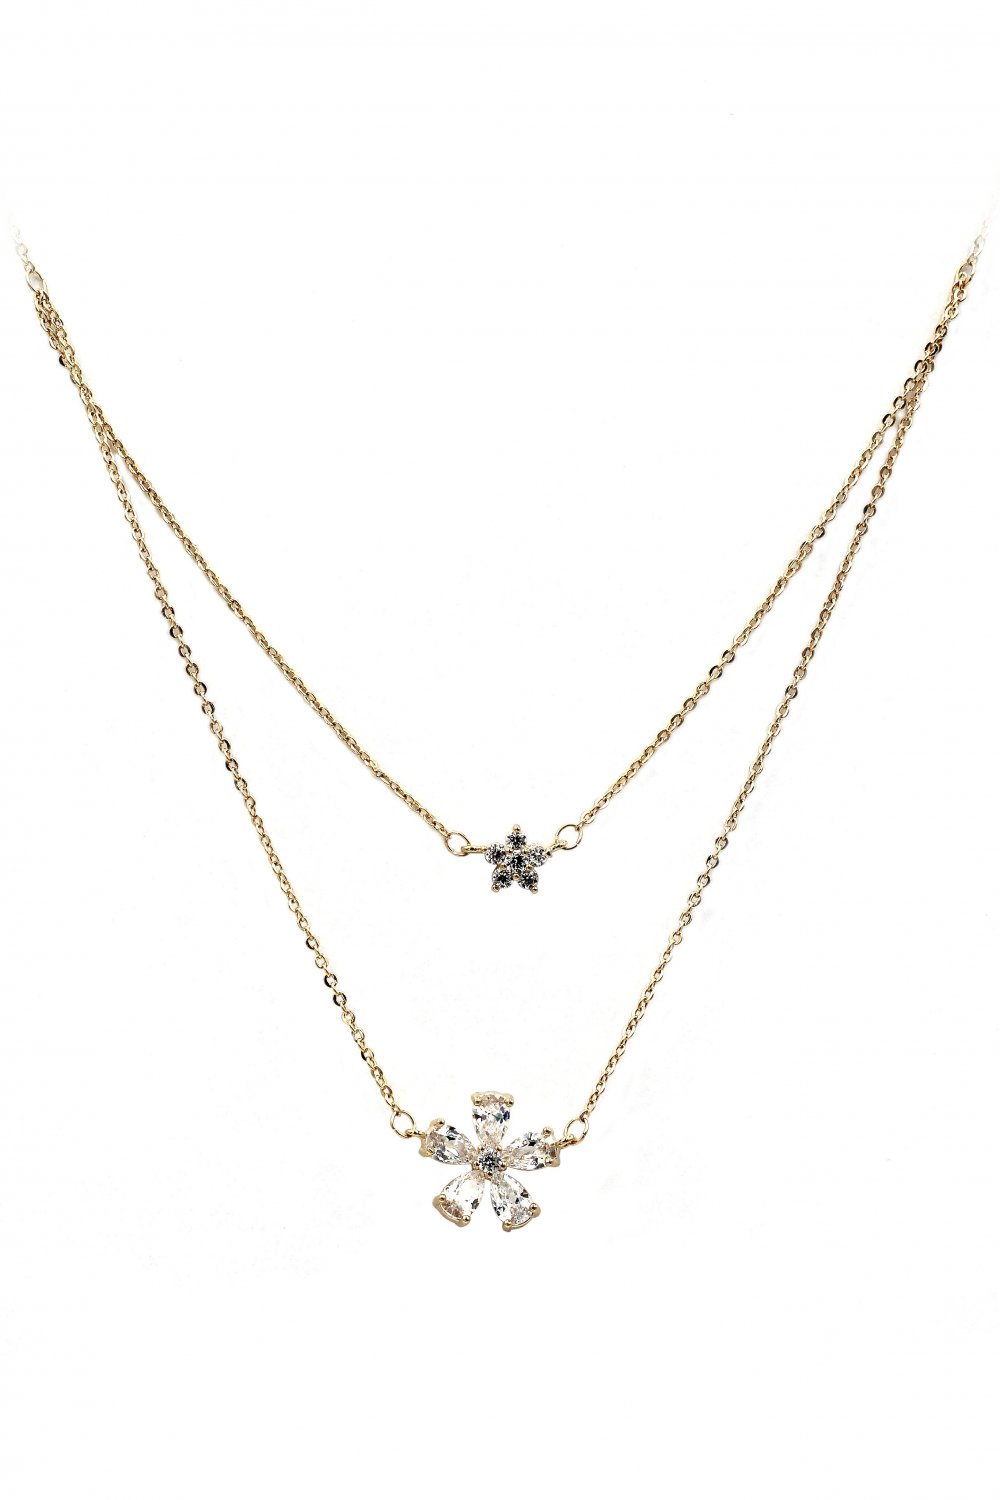 Duplexes mini flowers crystal gold necklace